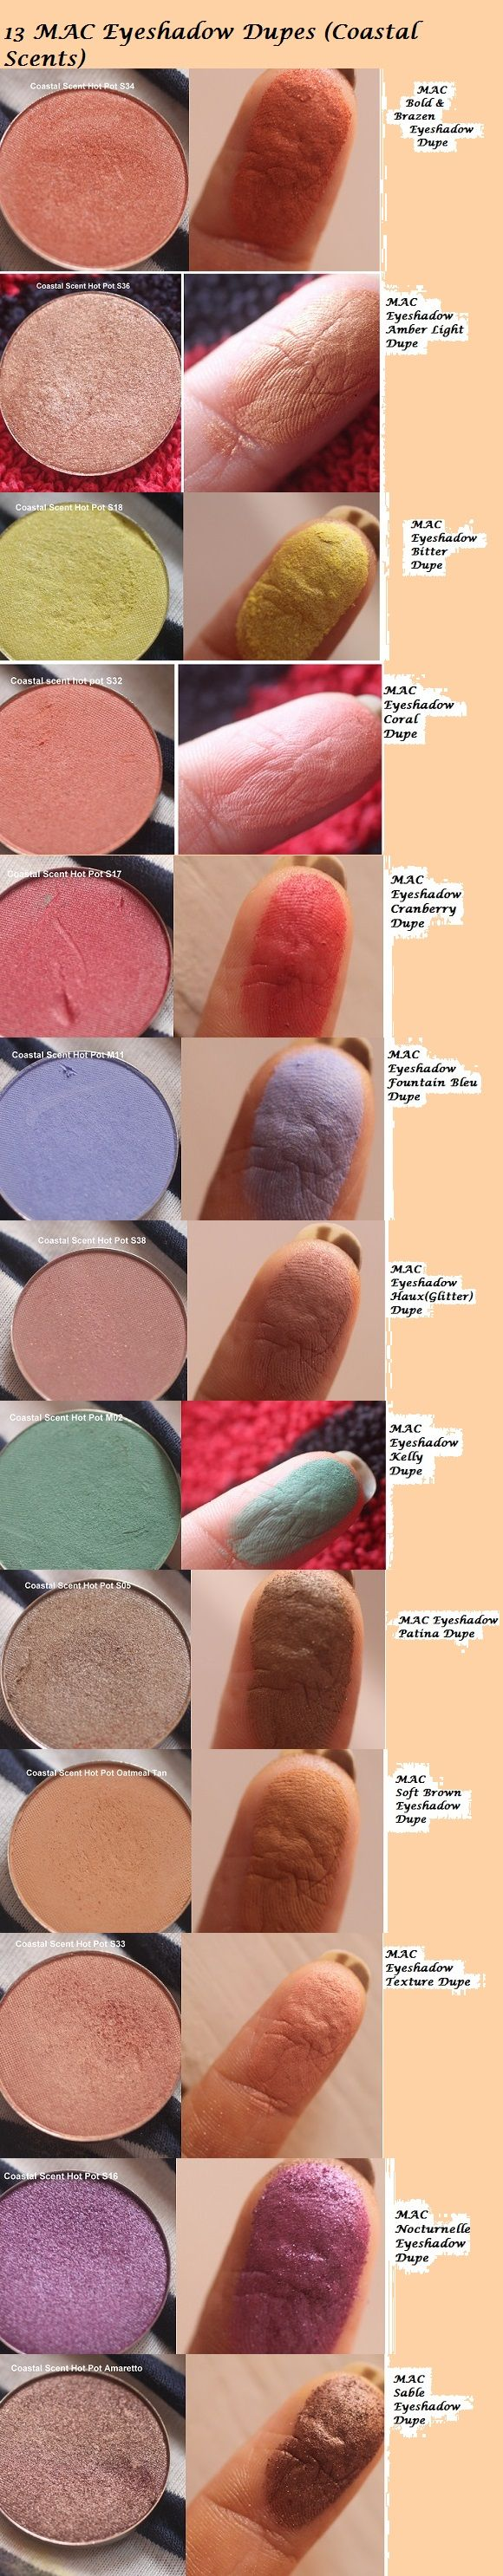 13 MAC Eyeshadow Dupes Coastal Scents http://www.wiseshe.com/2013/06/13-mac-eyeshadow-dupes-coastal-scents.html